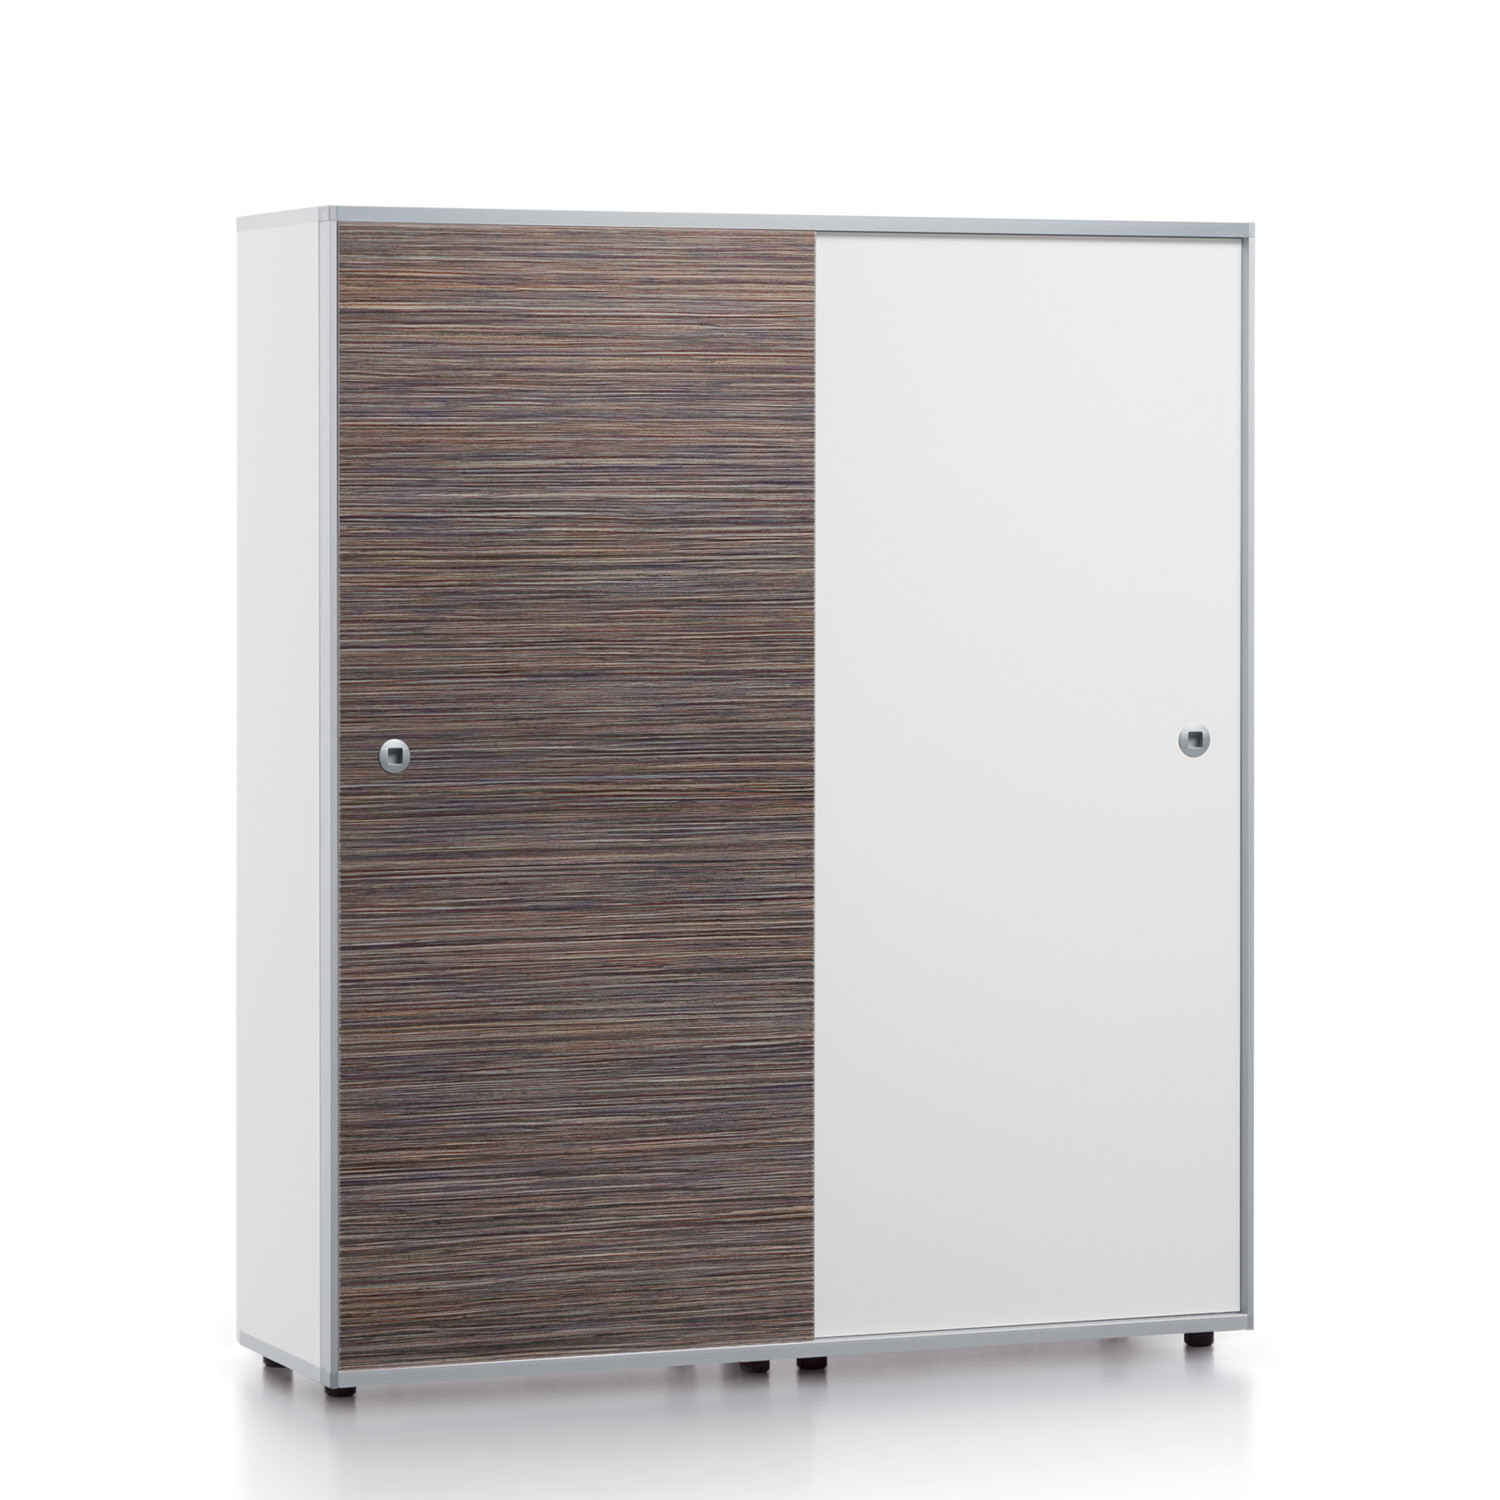 Relations Office Storage Cabinet